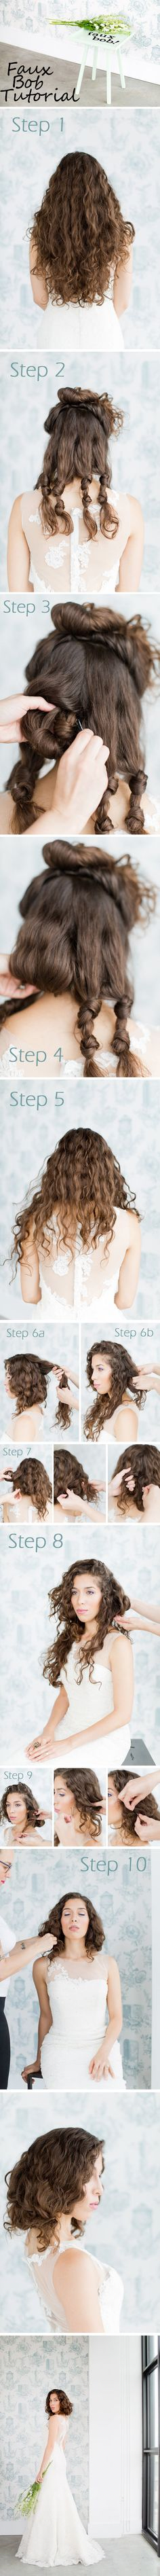 Faux Bob Tutorial, wedding hair perfect, check out the step by step instructions | Melissa Kruse Photography http://storyboardwedding.com/gorgeous-wedding-hair-faux-bob-tutorial/